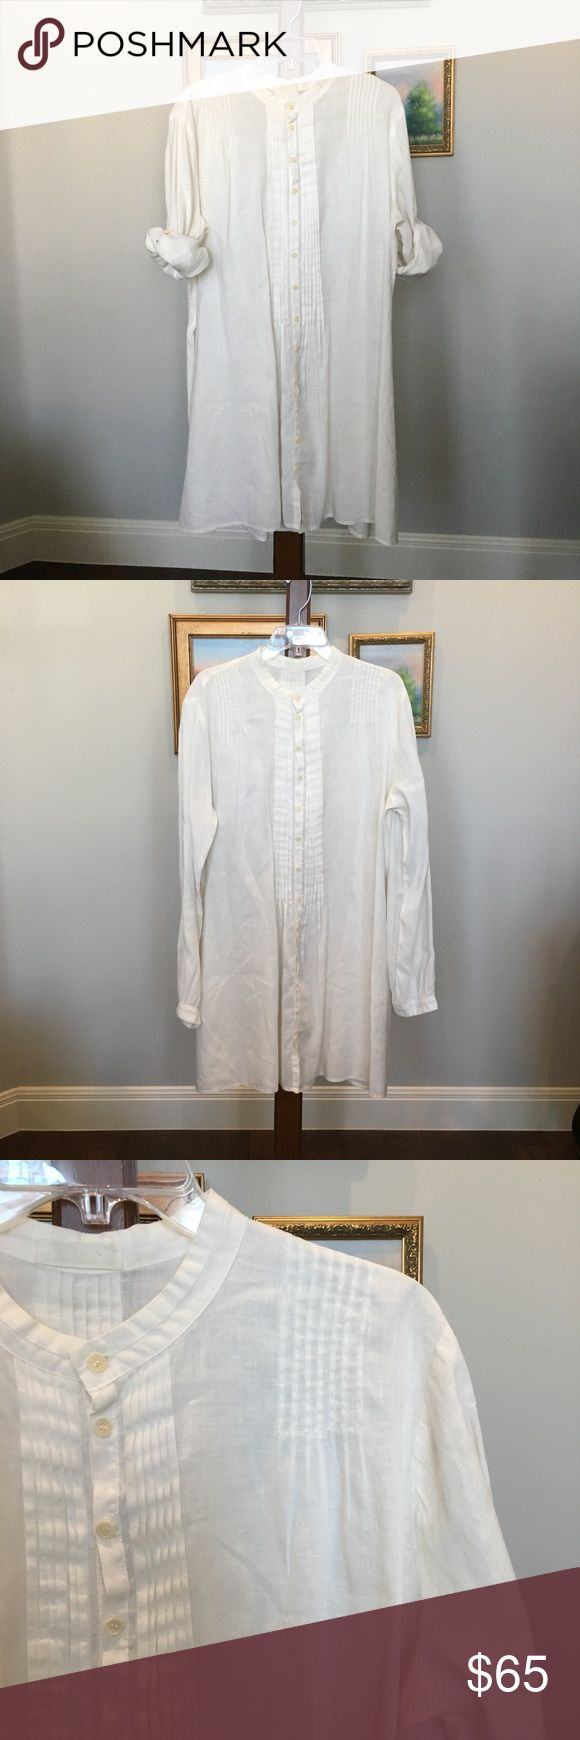 "CP Shades White Linen Tunic size XL Beautiful and effortless ❤️ CP Shades white linen tunic size XL. Button down, roll sleeves, and pin-tuck details. In excellent condition ⭐️ Bust measures 52"", length 36"". CP Shades Tops Tunics"